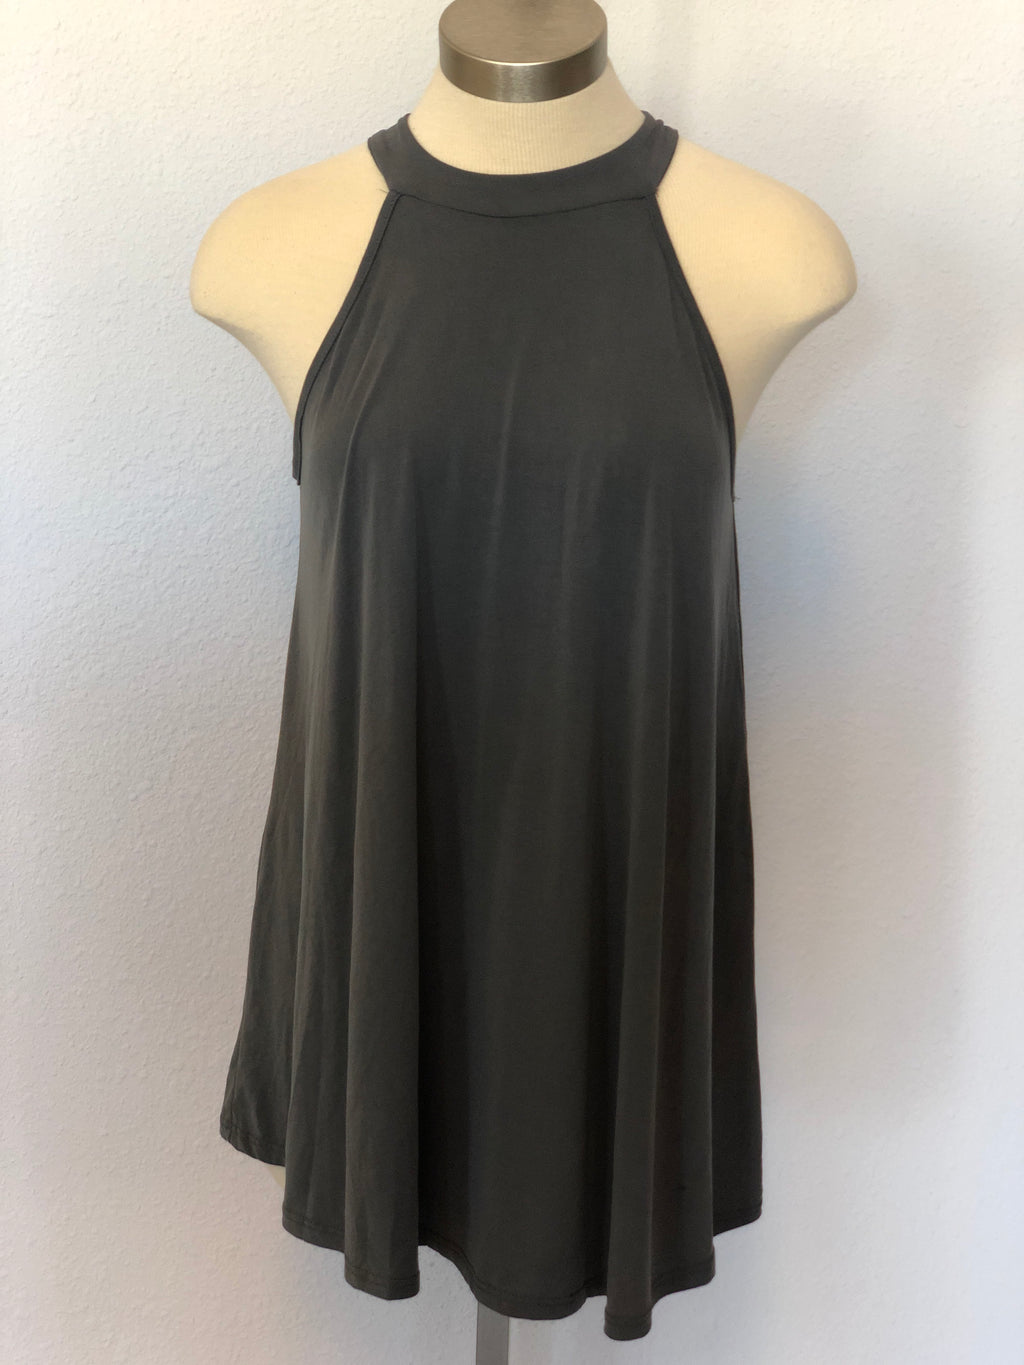 SLEEVELESS FLOWING TUNIC